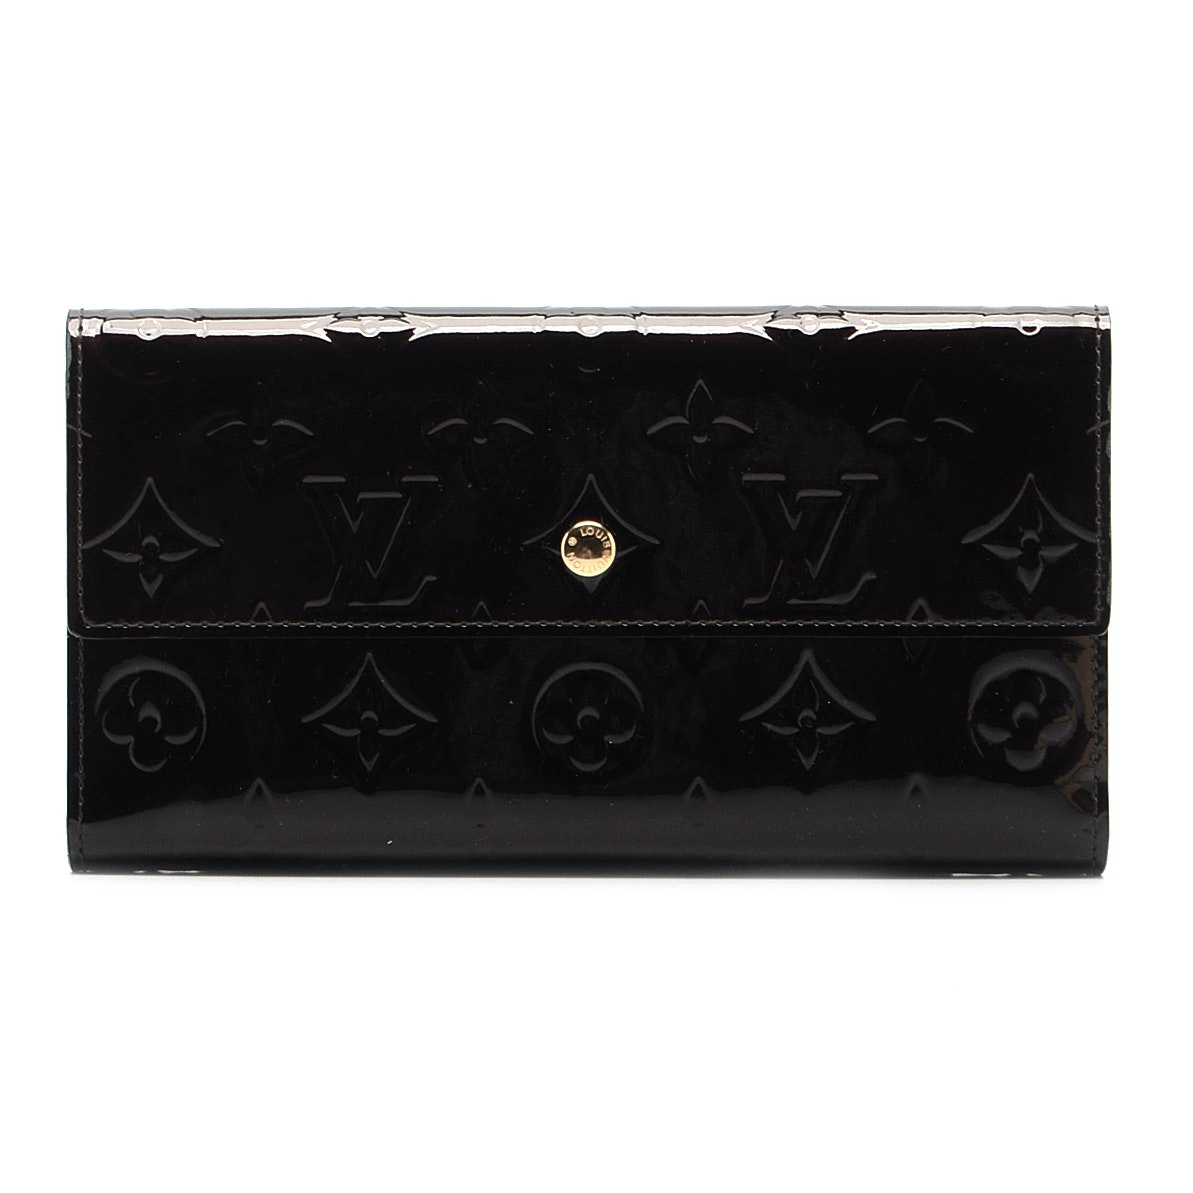 Louis Vuitton of Paris Vernis Amarante Wallet